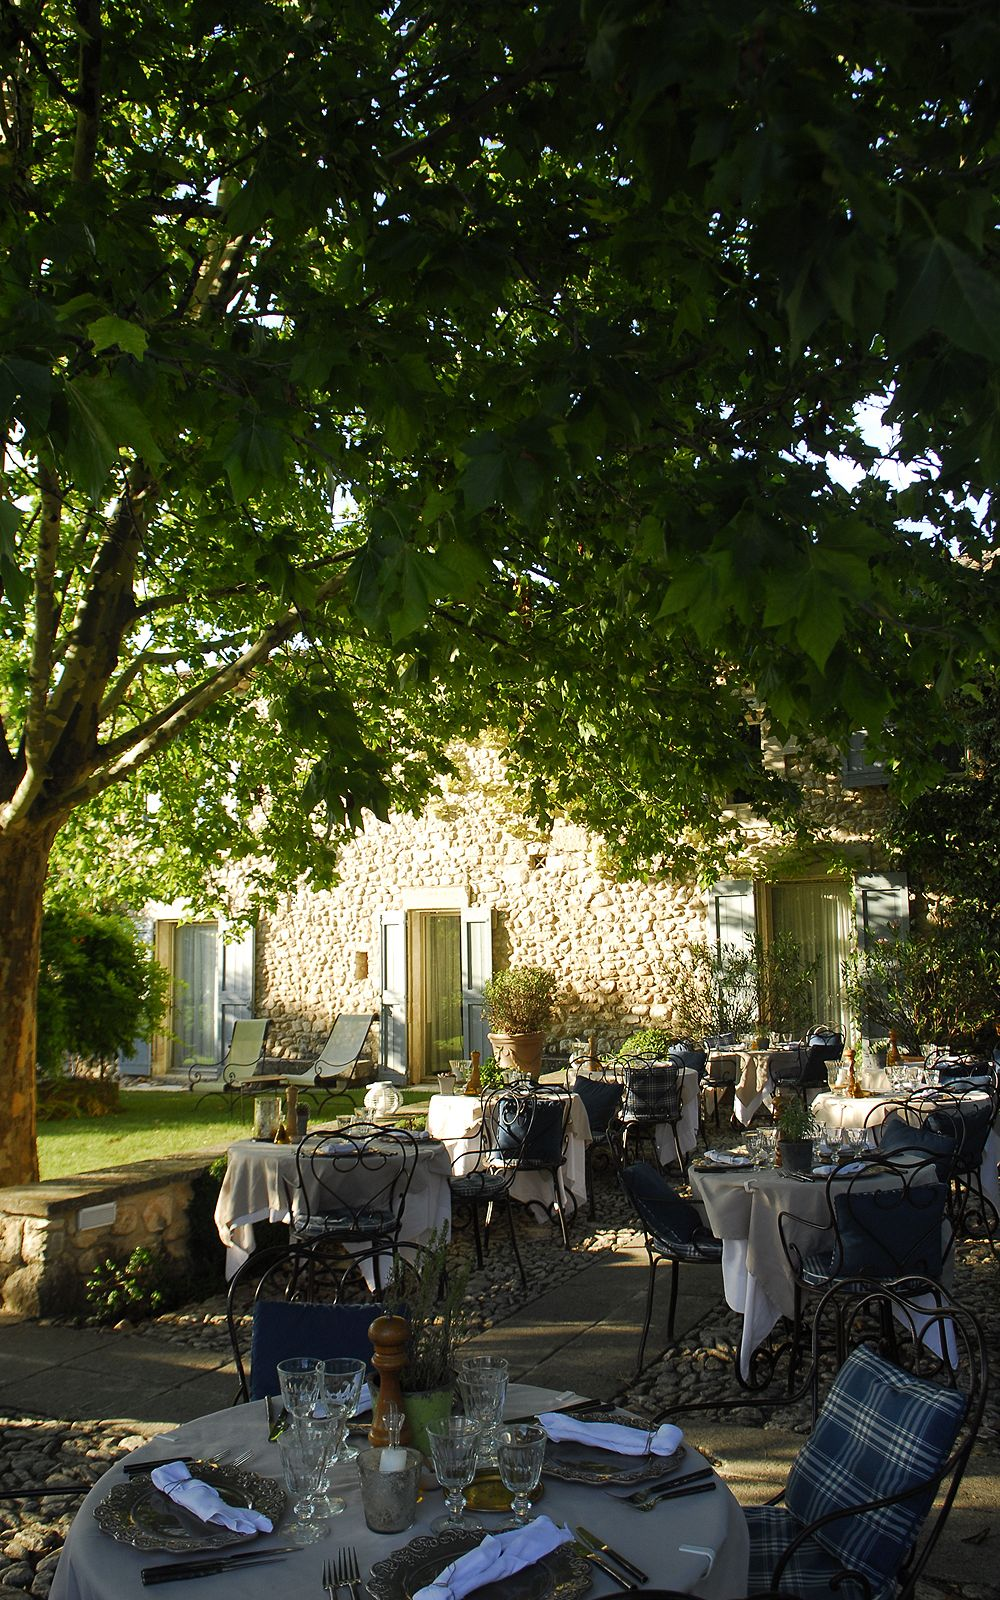 La Bastide de Marie. Gravel terrace. Big trees. Lawn. Stone. Shutters. Sunlight. Wrought iron furniture.